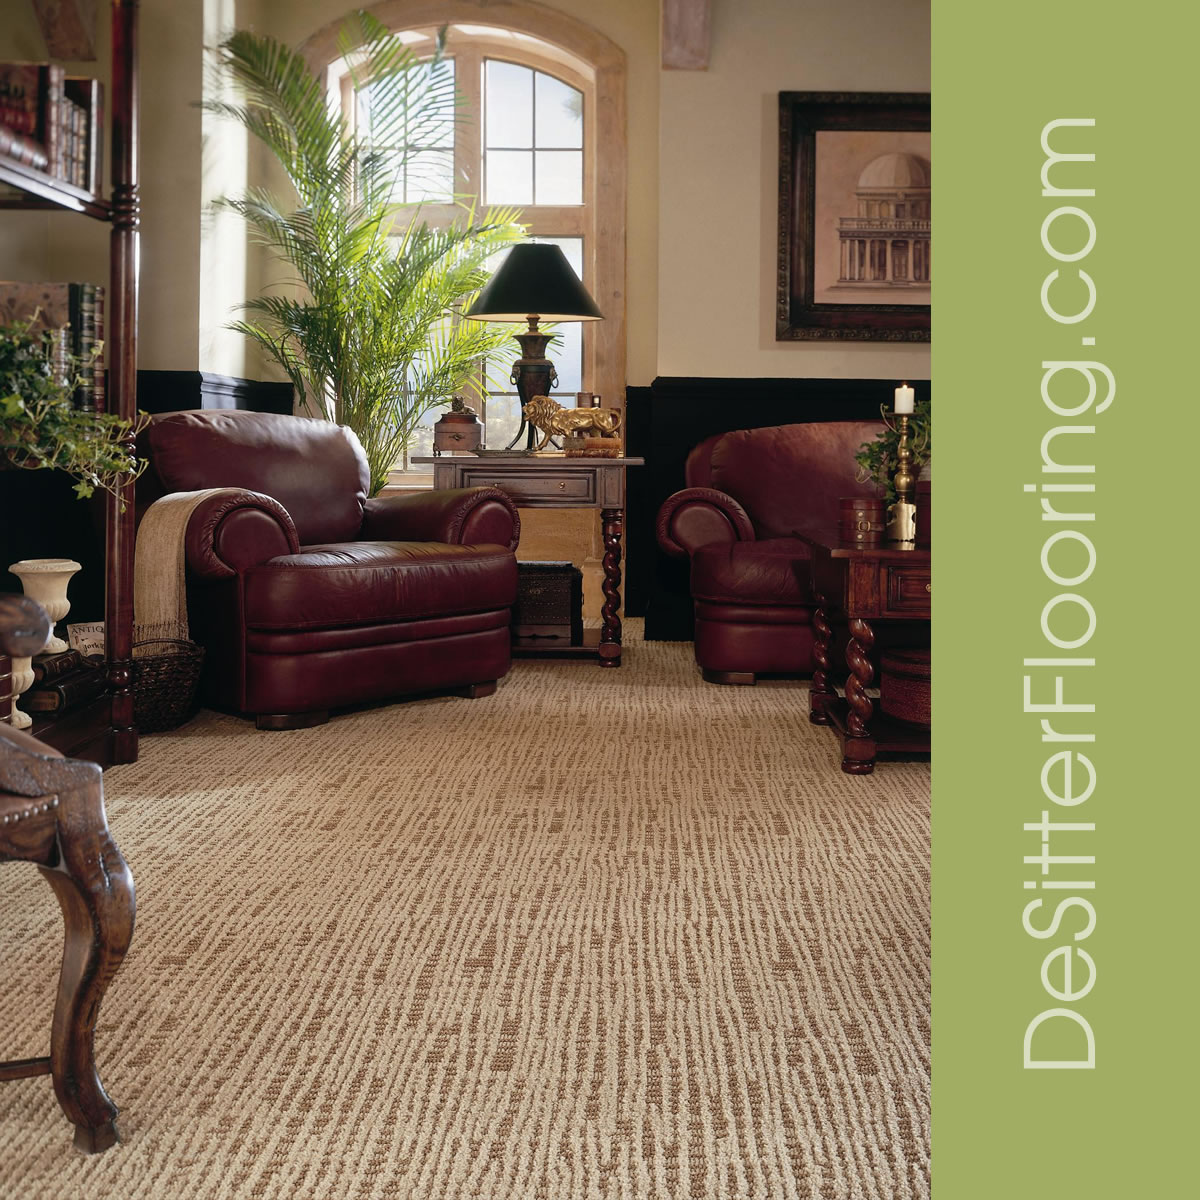 La grange 60525 new carpet installation desitter flooring desitter flooring carpet uses quality materials to ensure a lifetime of use see how great it can be by calling 630 948 5582 or contacting us online for tyukafo